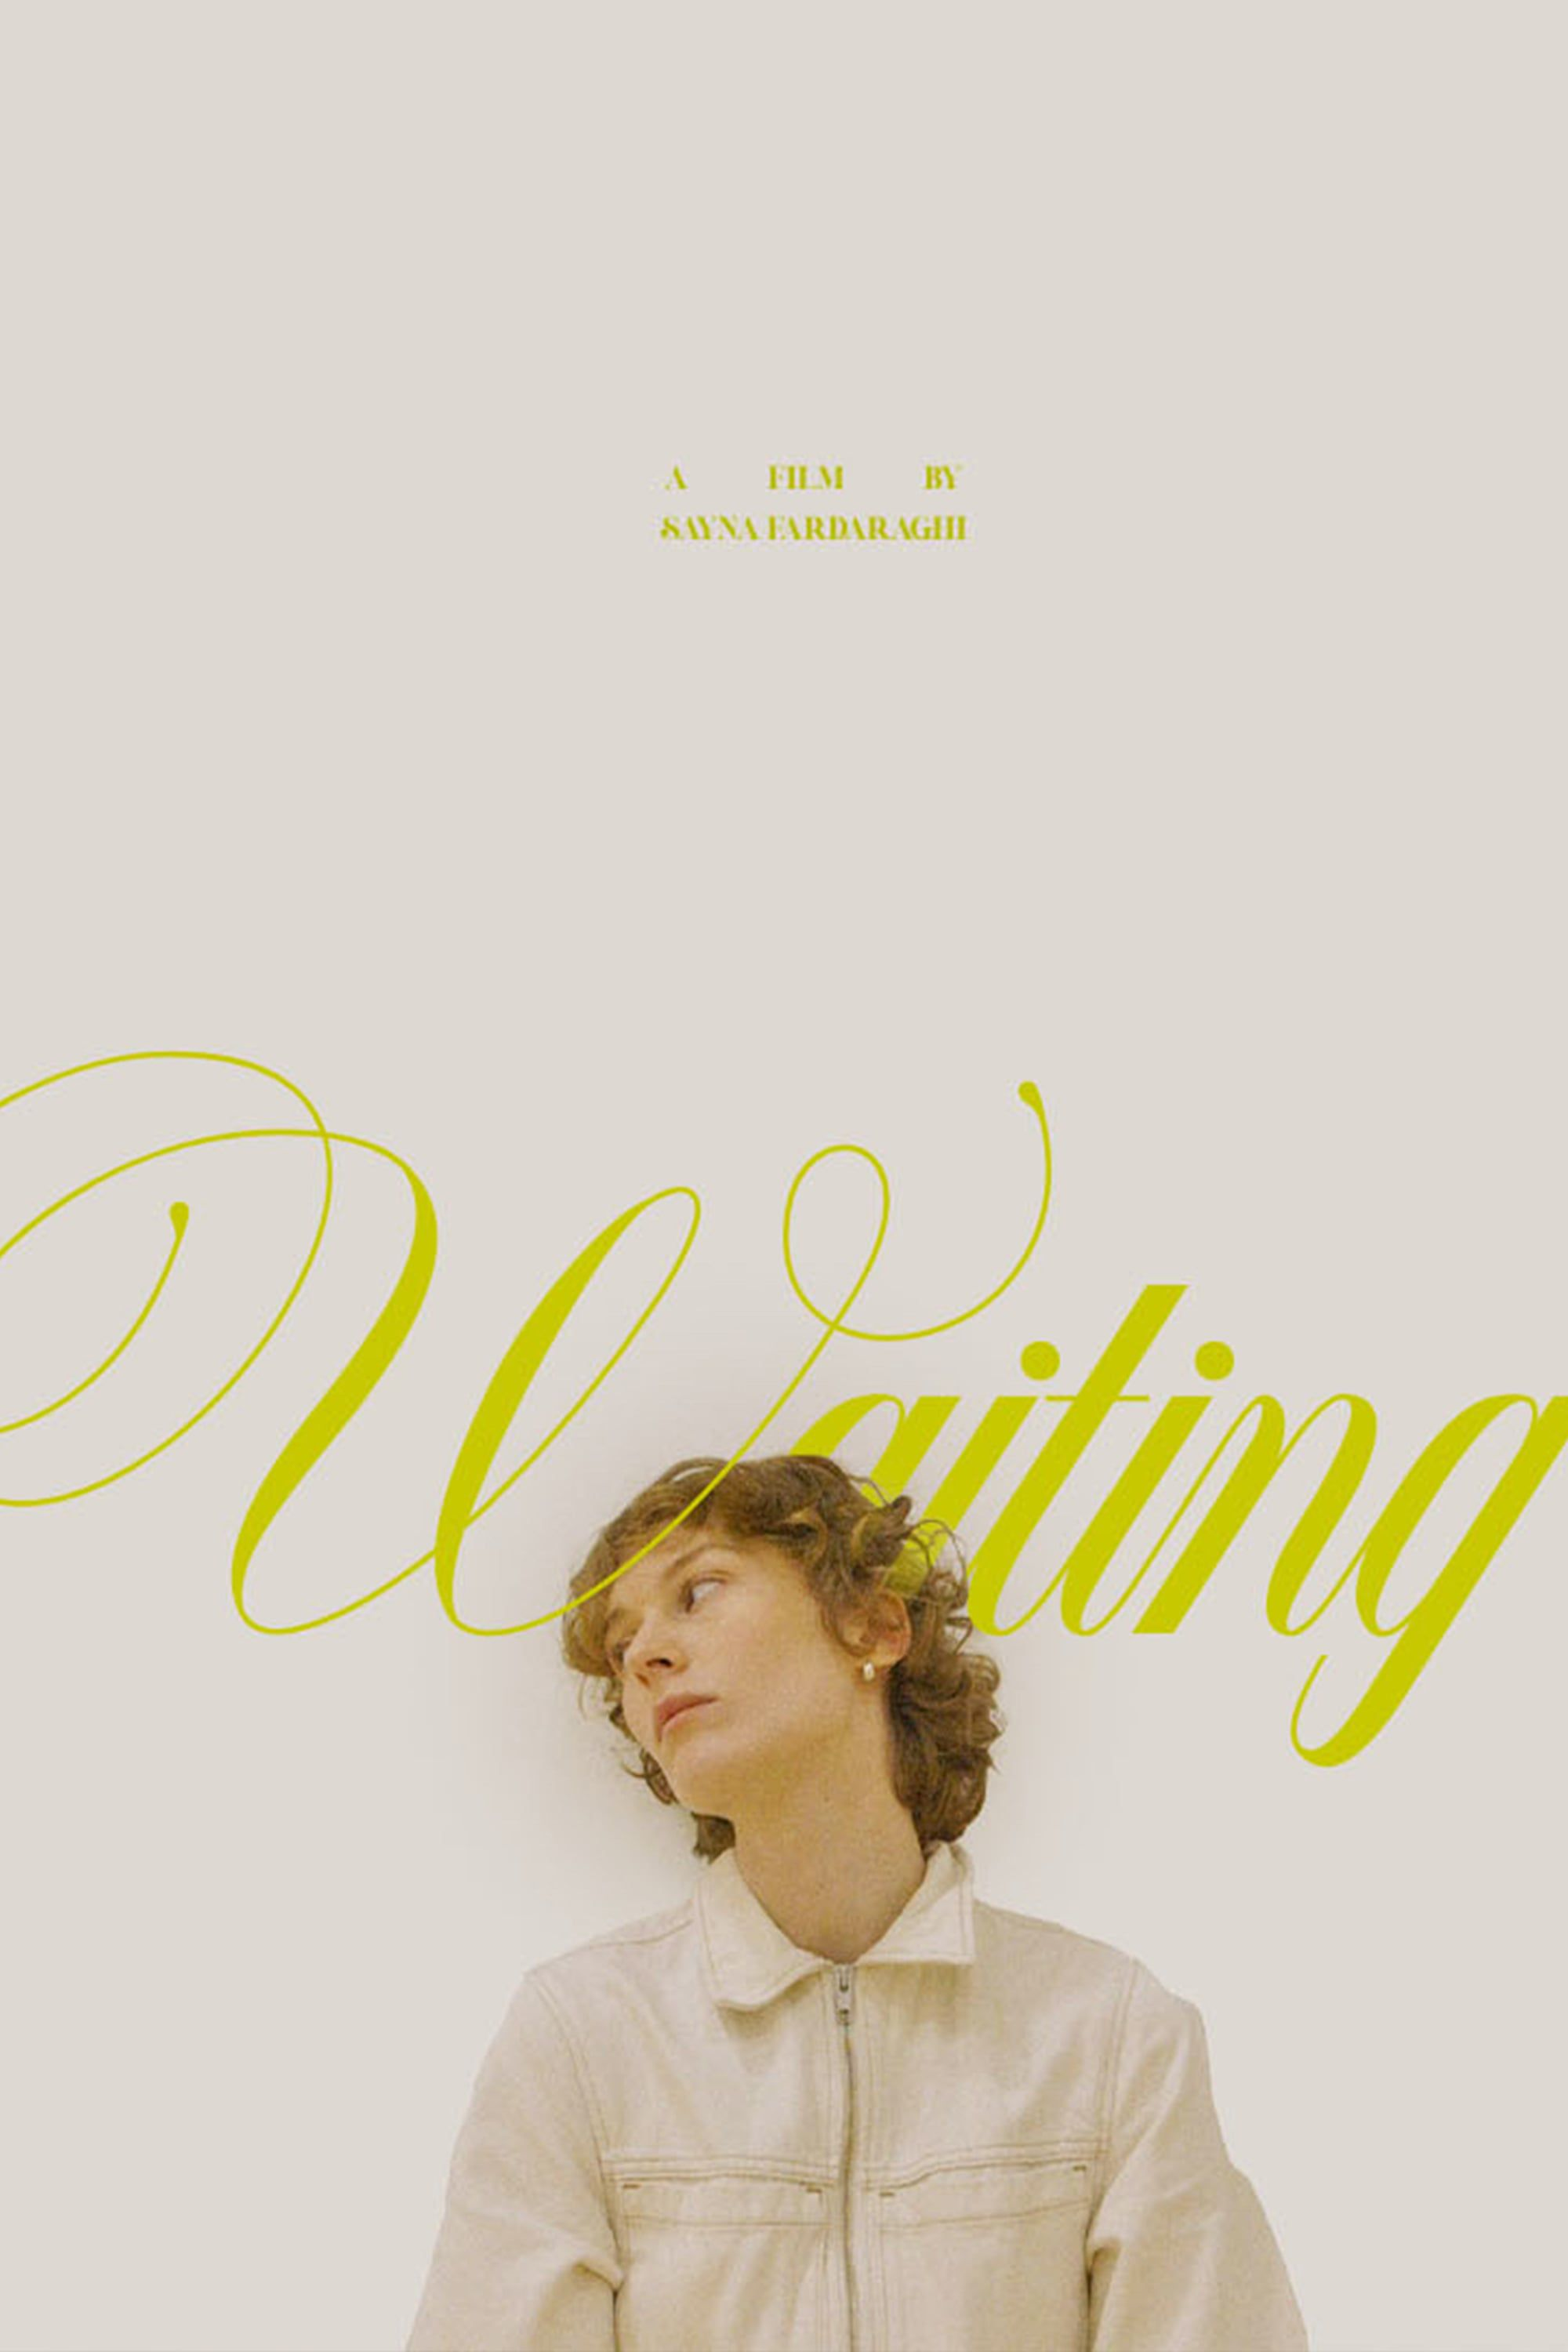 WAITING - Film (2020) streaming VF gratuit complet